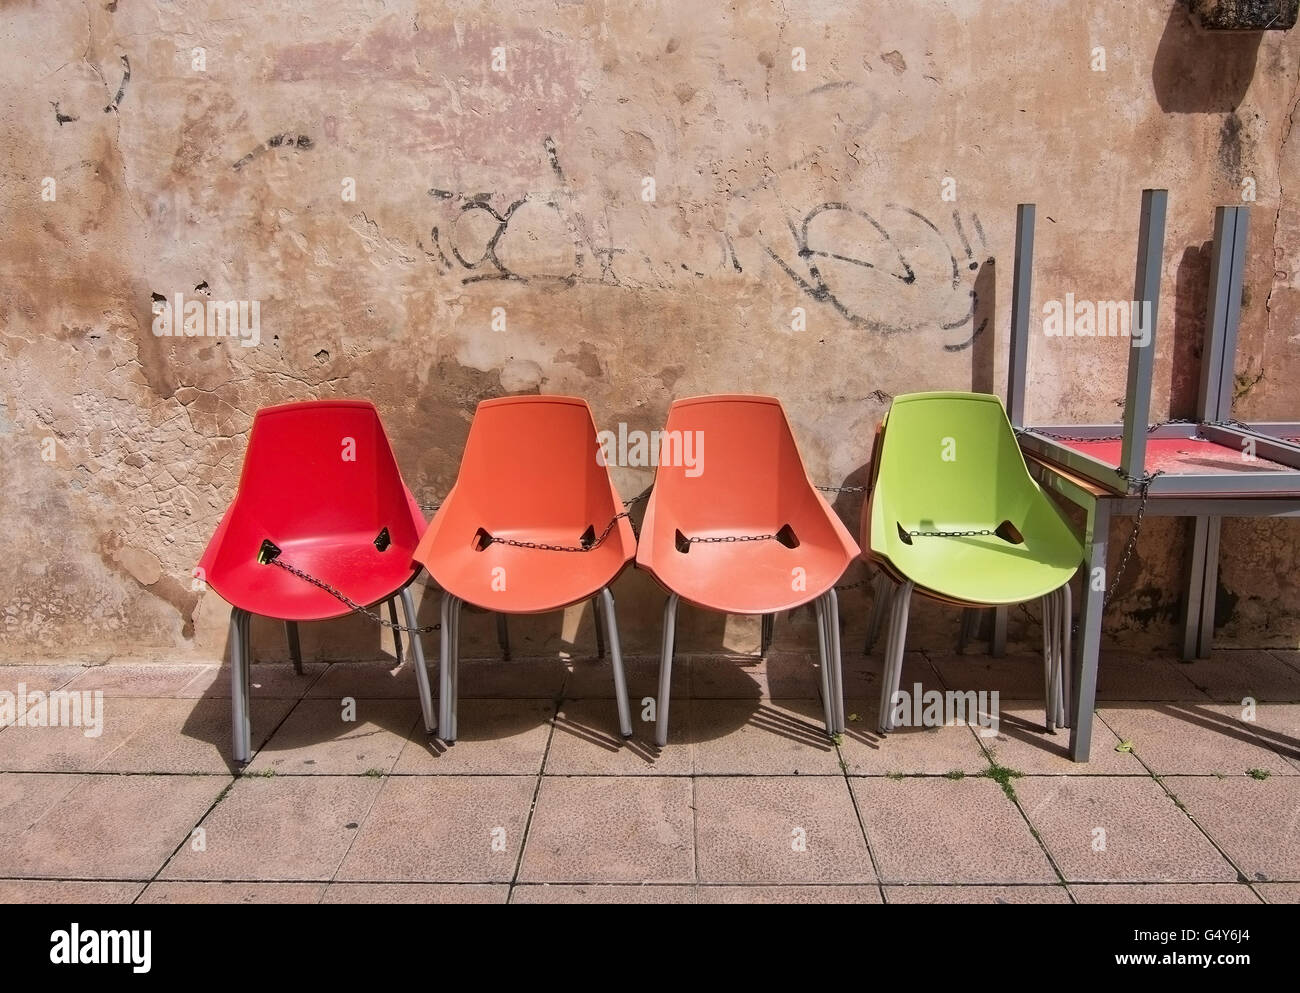 Four Colorful Plastic Chairs In Color Order Chained Together Against Stone  Wall With Washed Graffiti In